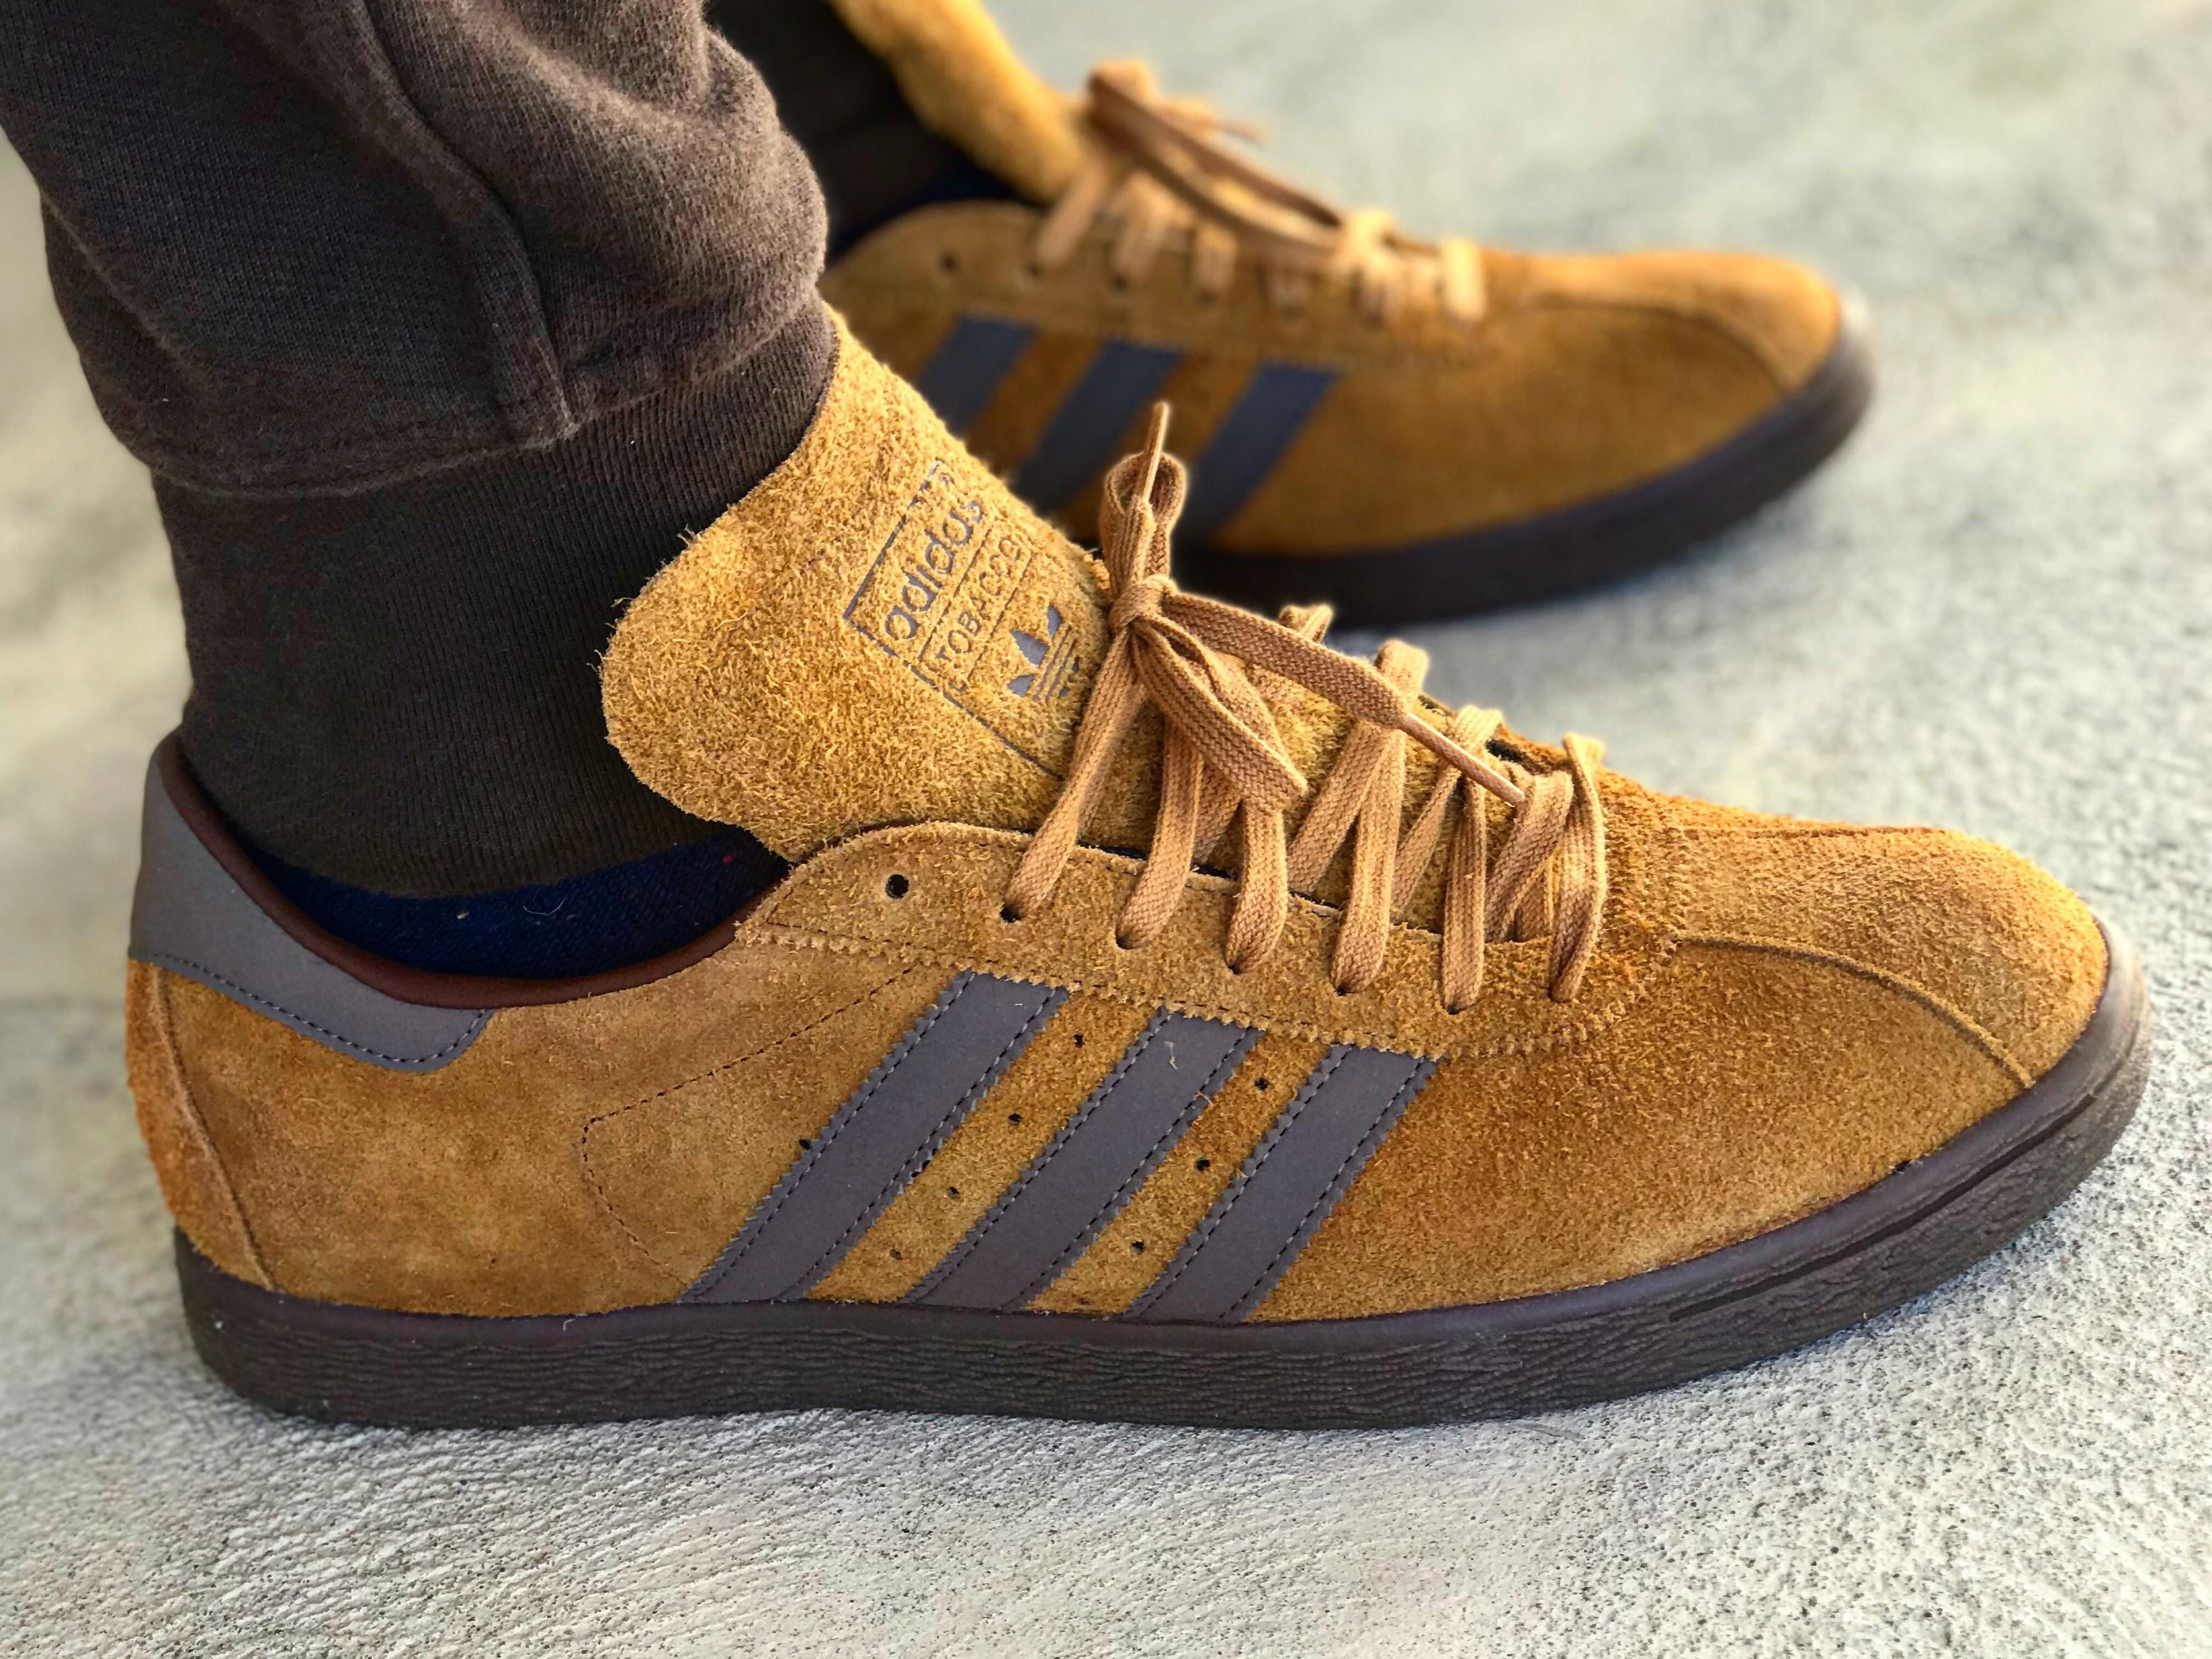 Adidas Tobacco. Cant believe I found them. Amazing texture